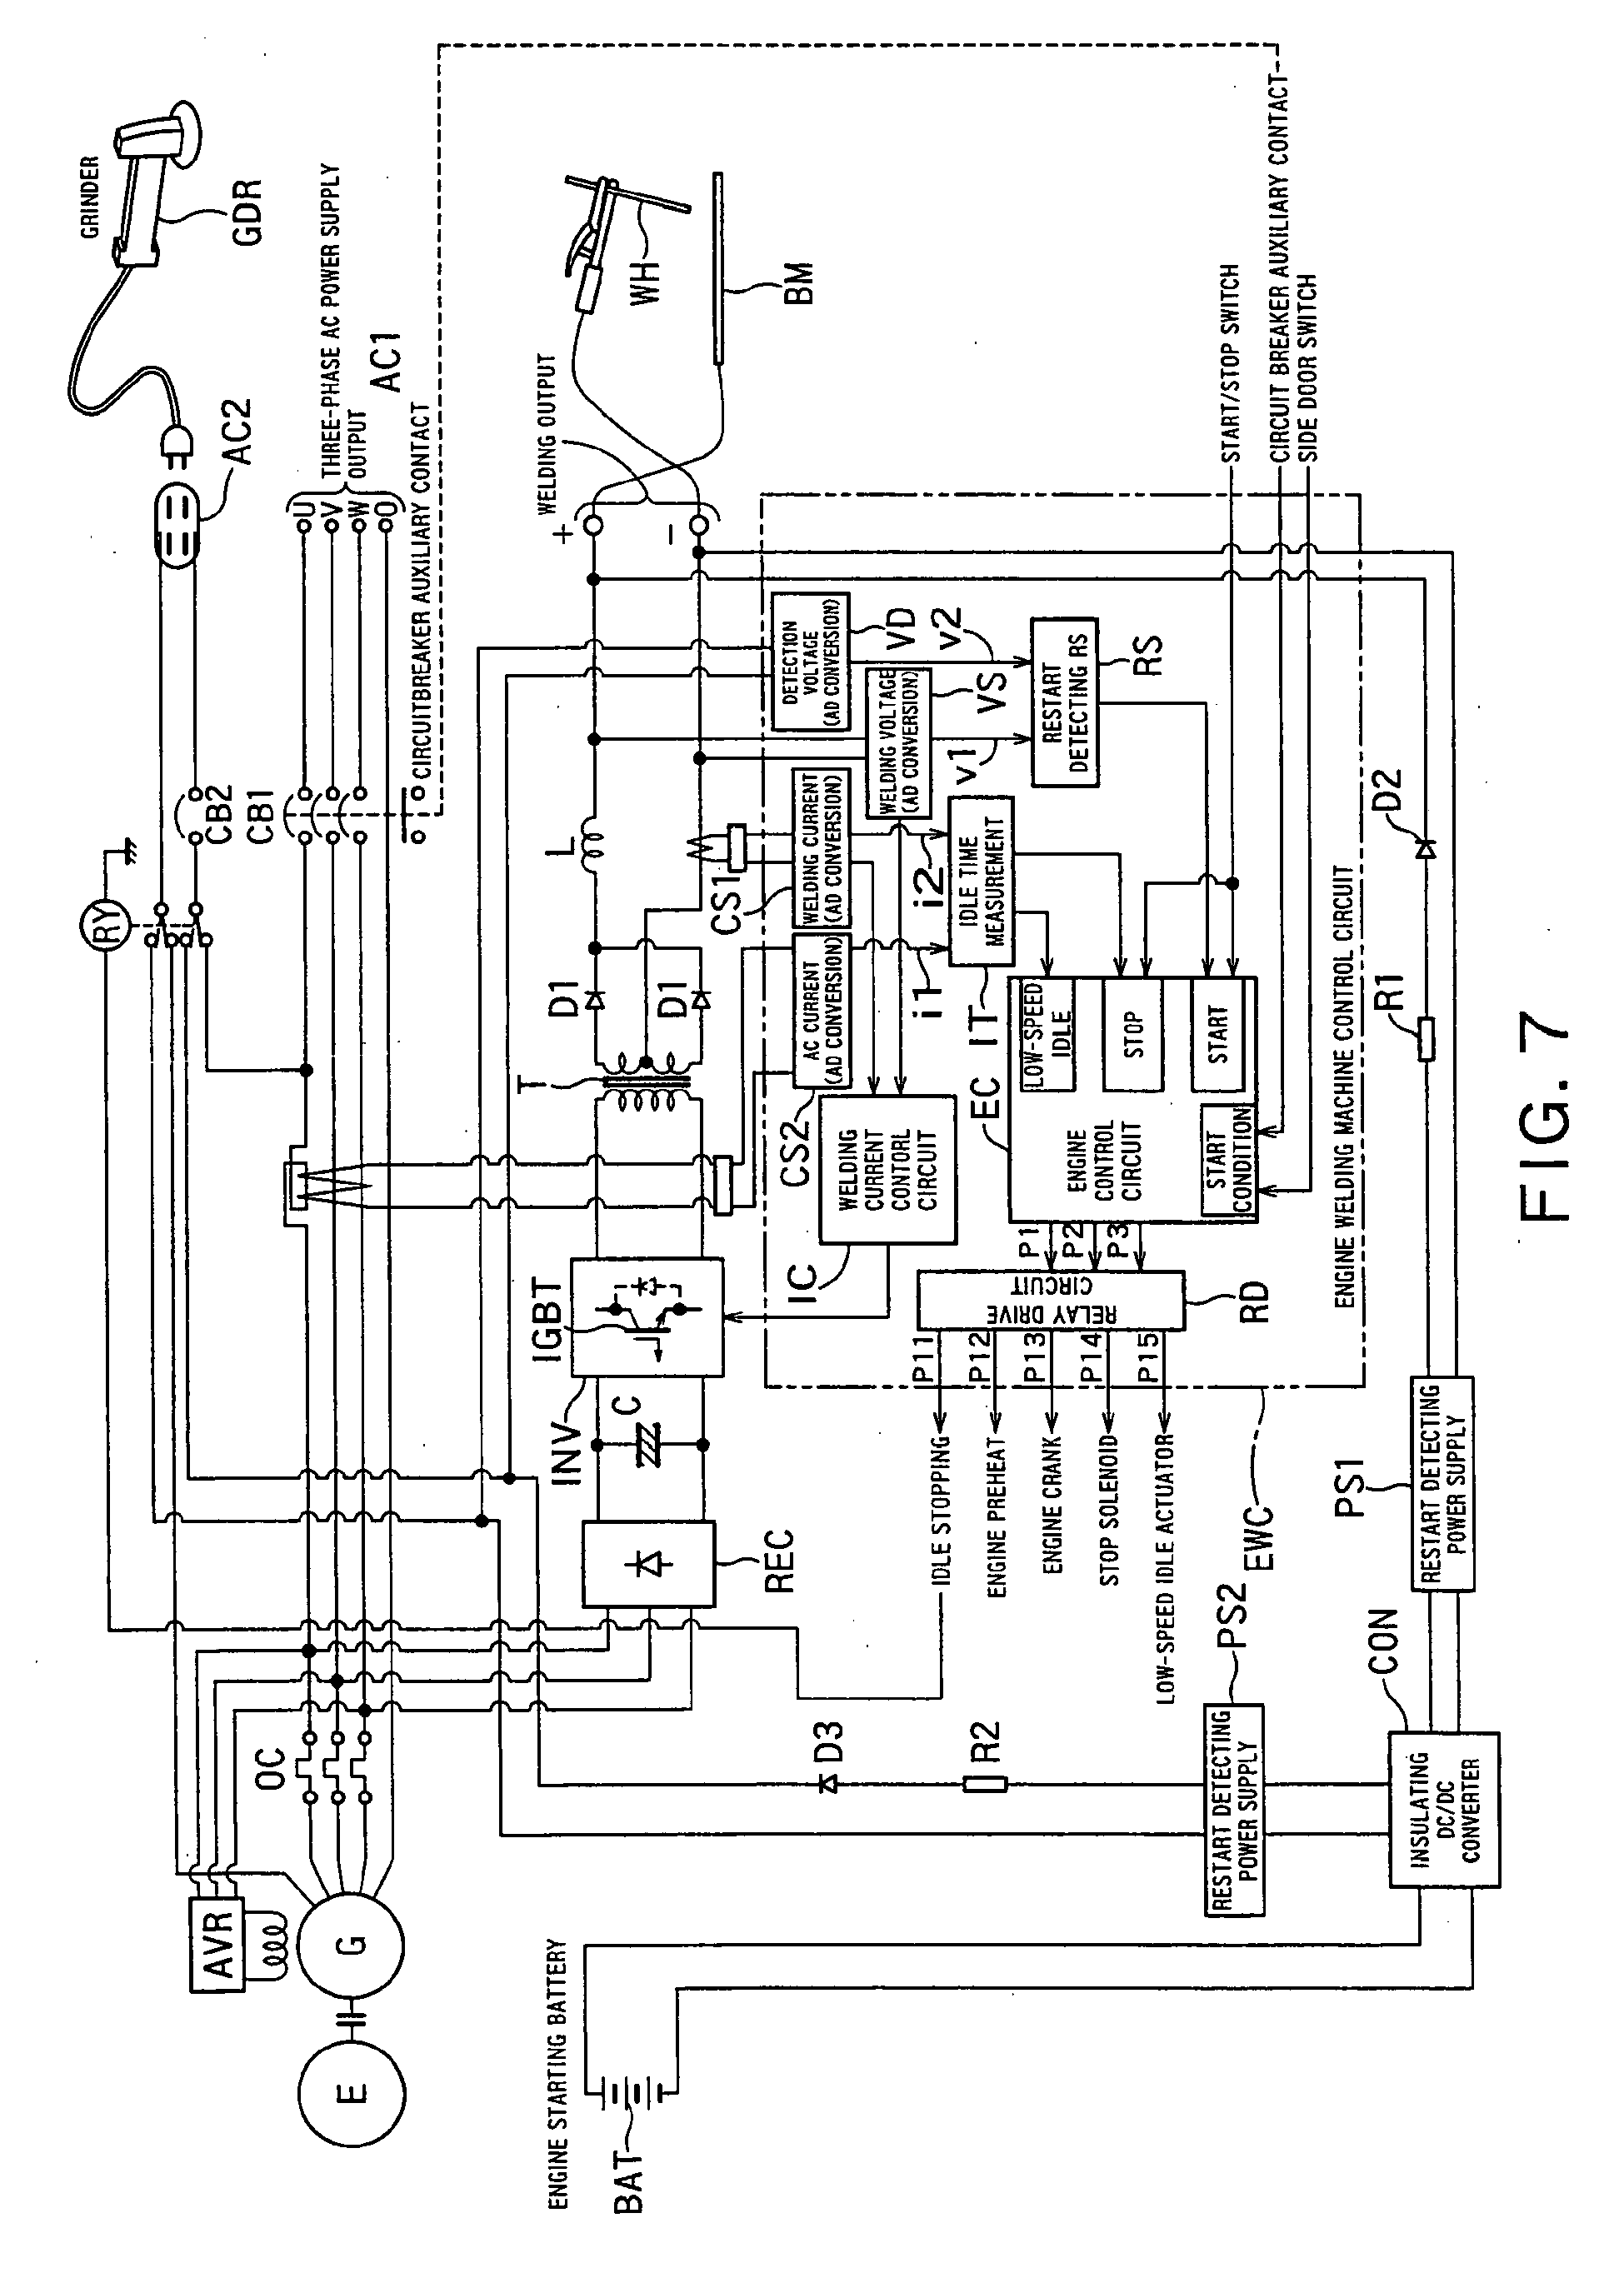 Taco Zvc404 Exp Wiring Diagram Taco Zone Valve Wiring